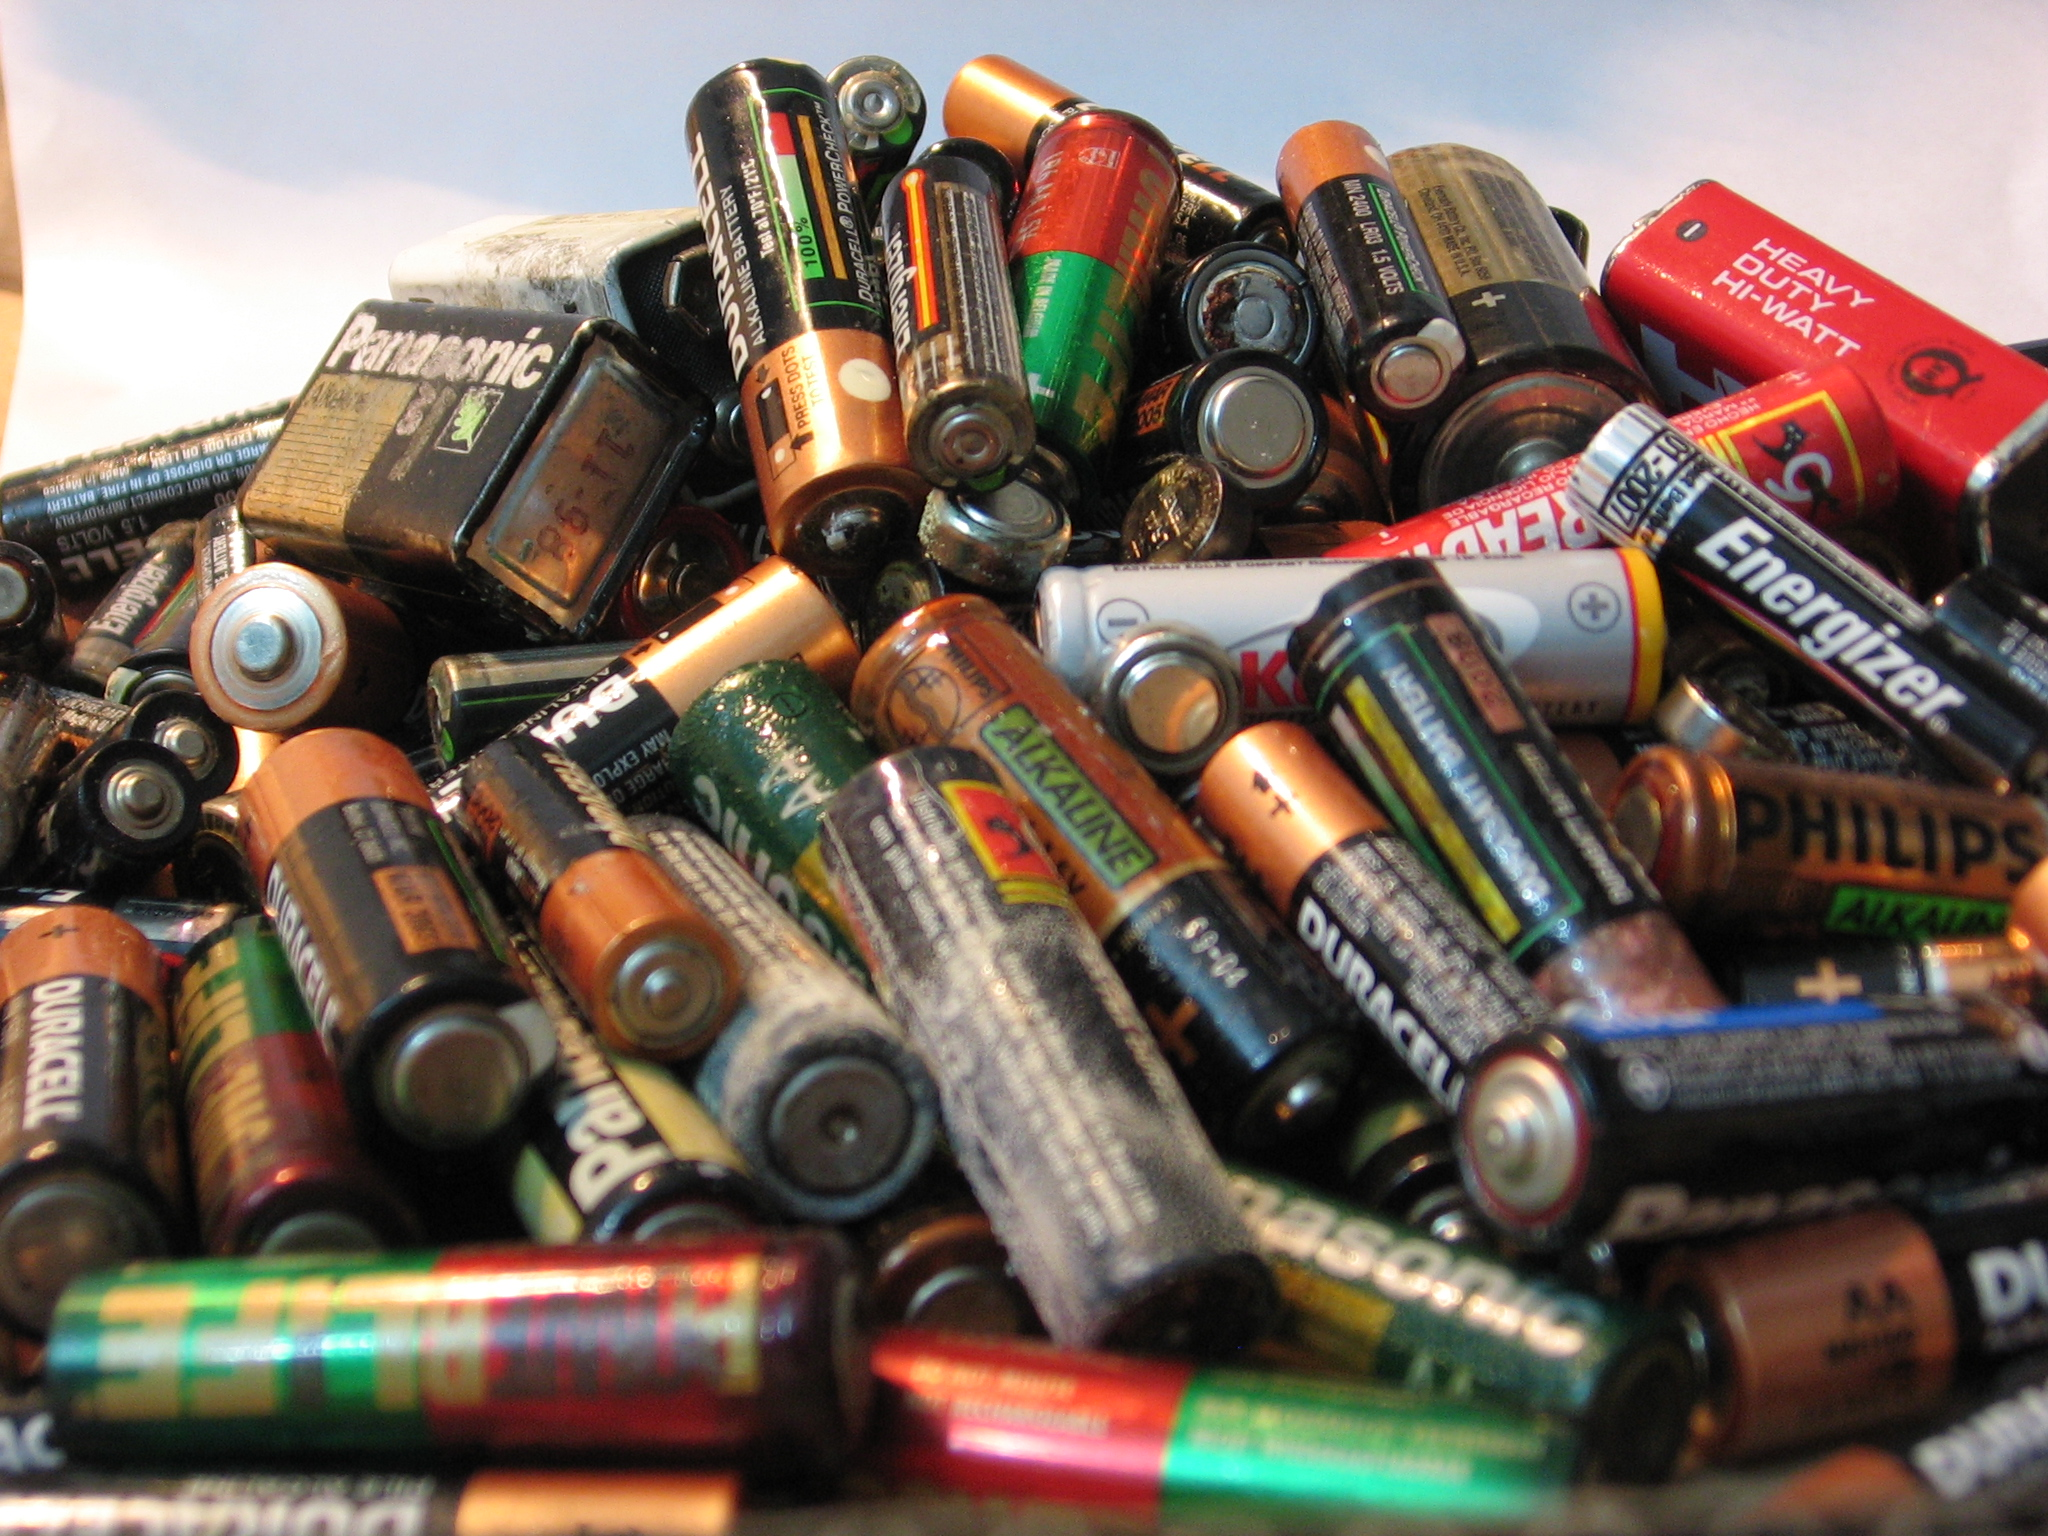 We may expect batteries to last for days, but they all wear out eventually. How quickly, however, is something we can control.